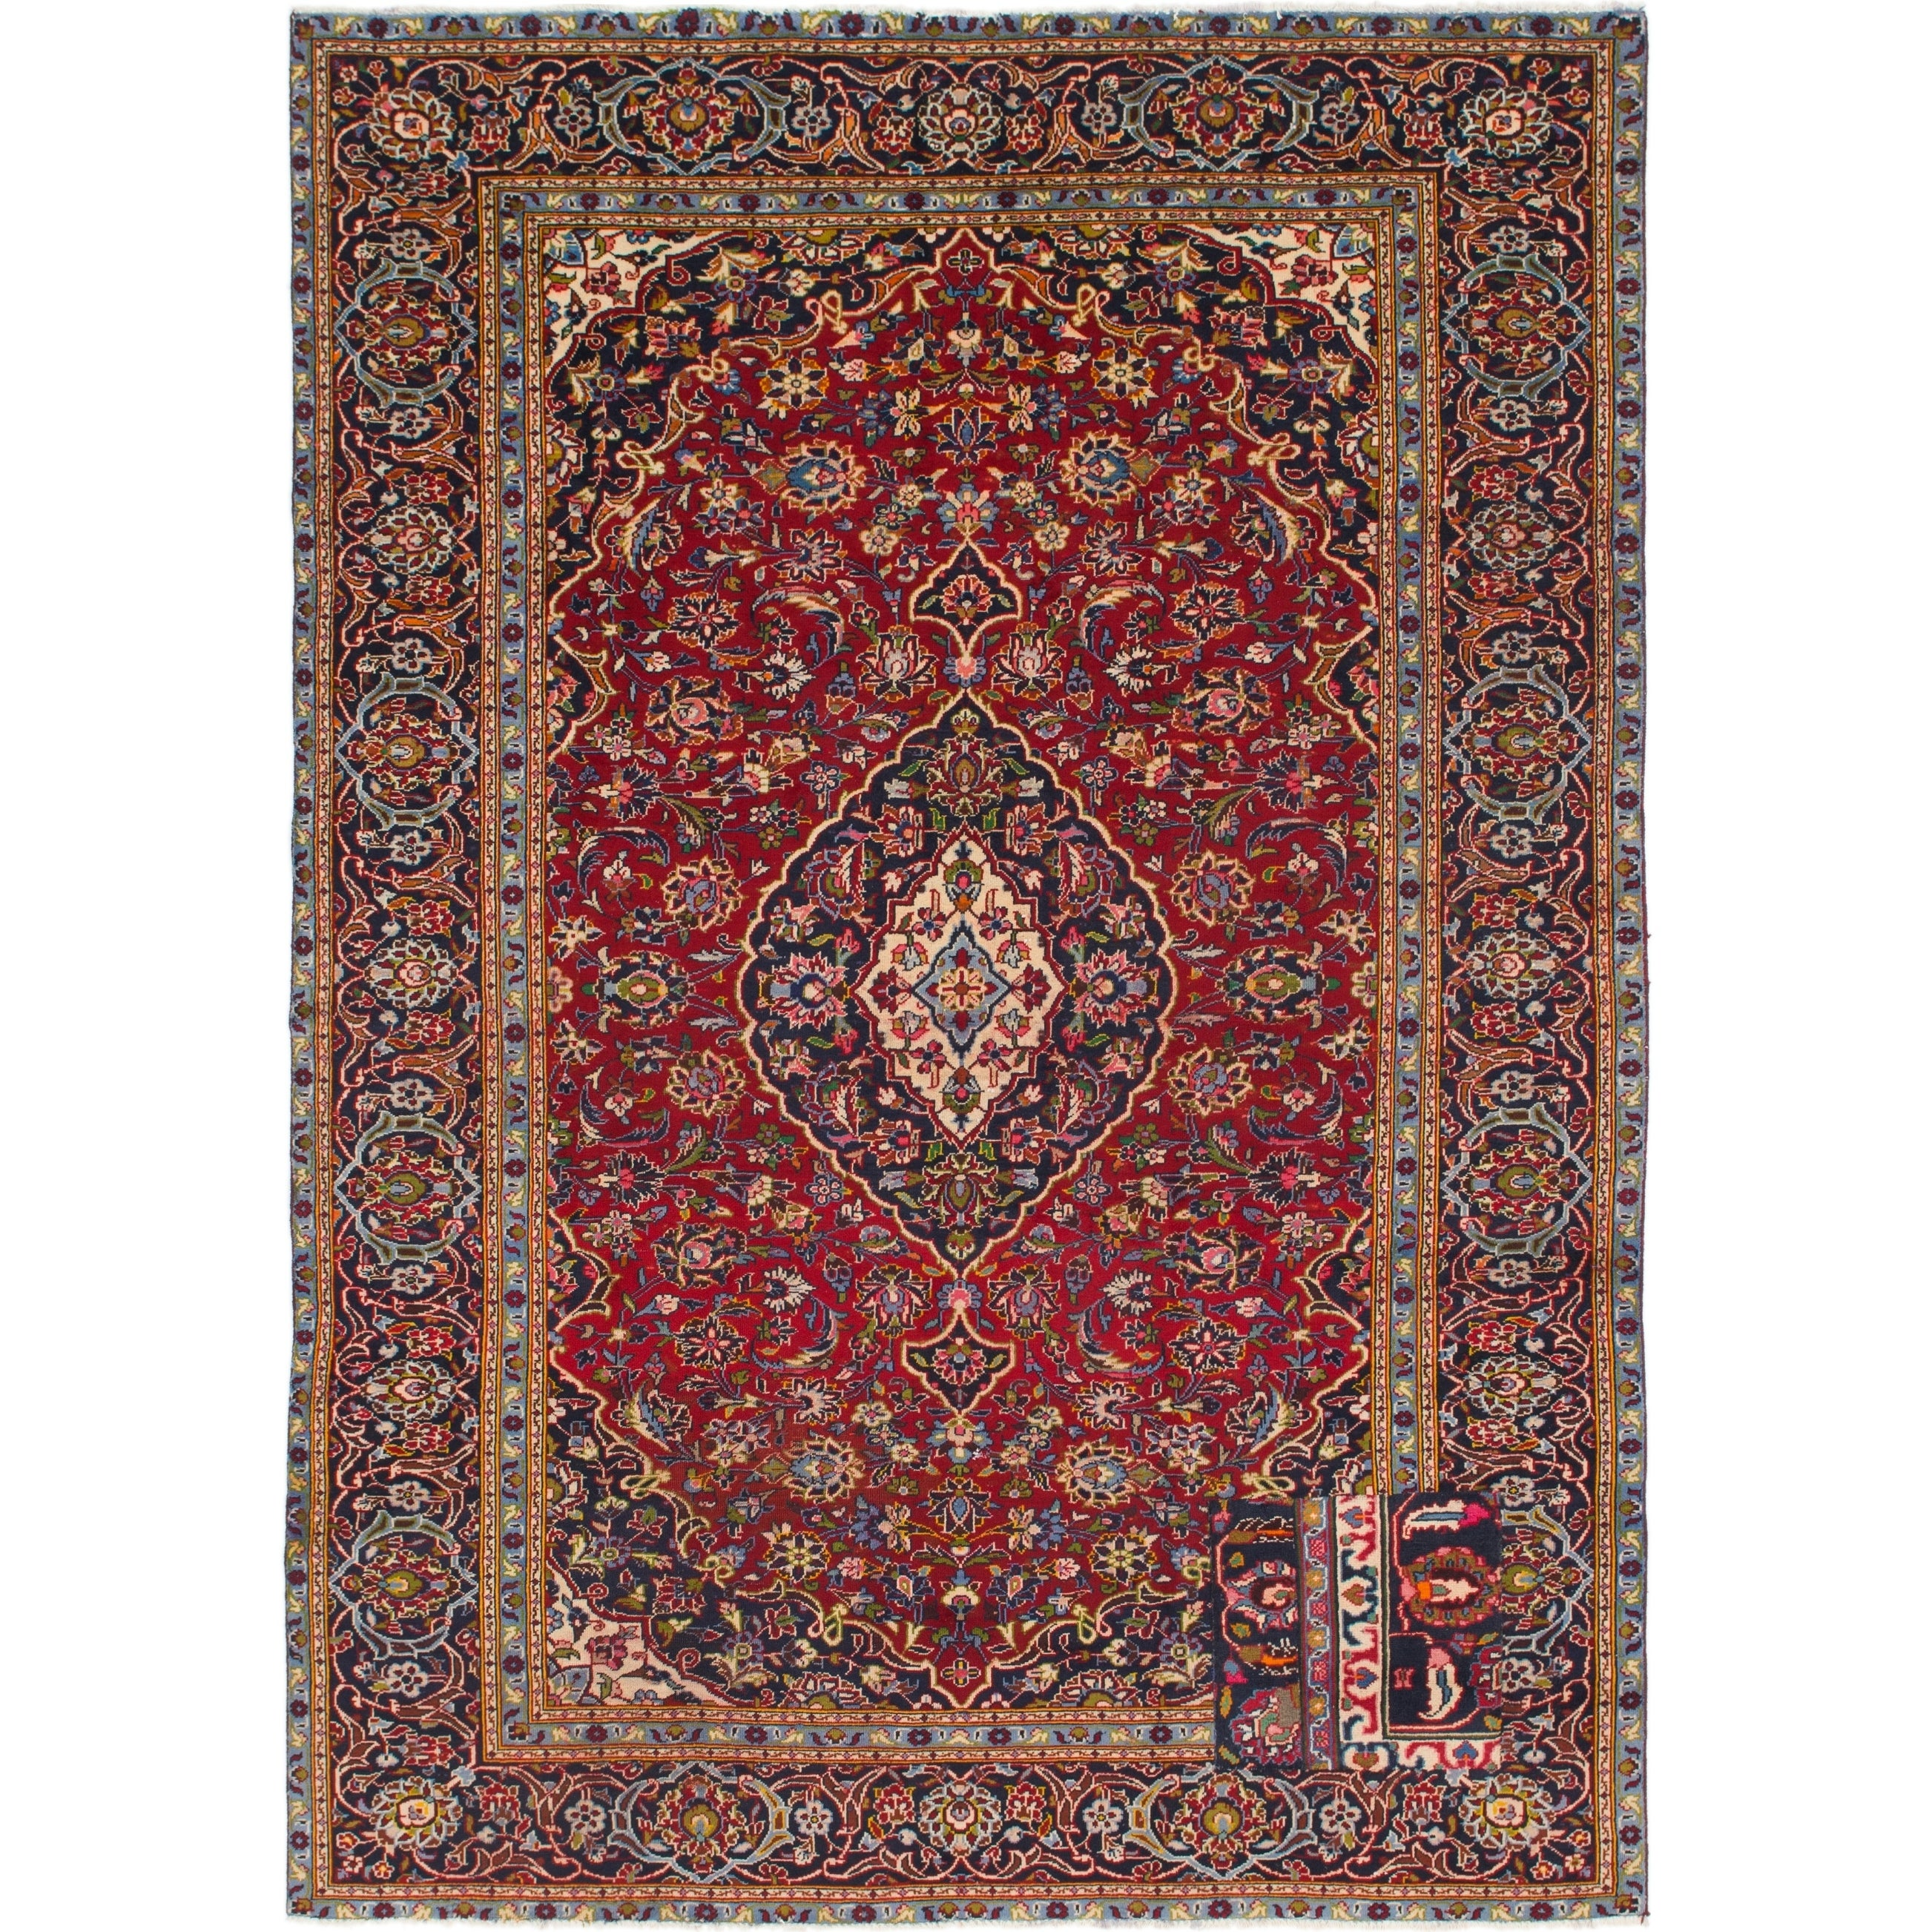 Hand Knotted Kashan Semi Antique Wool Area Rug - 7 6 x 10 9 (Red - 7 6 x 10 9)